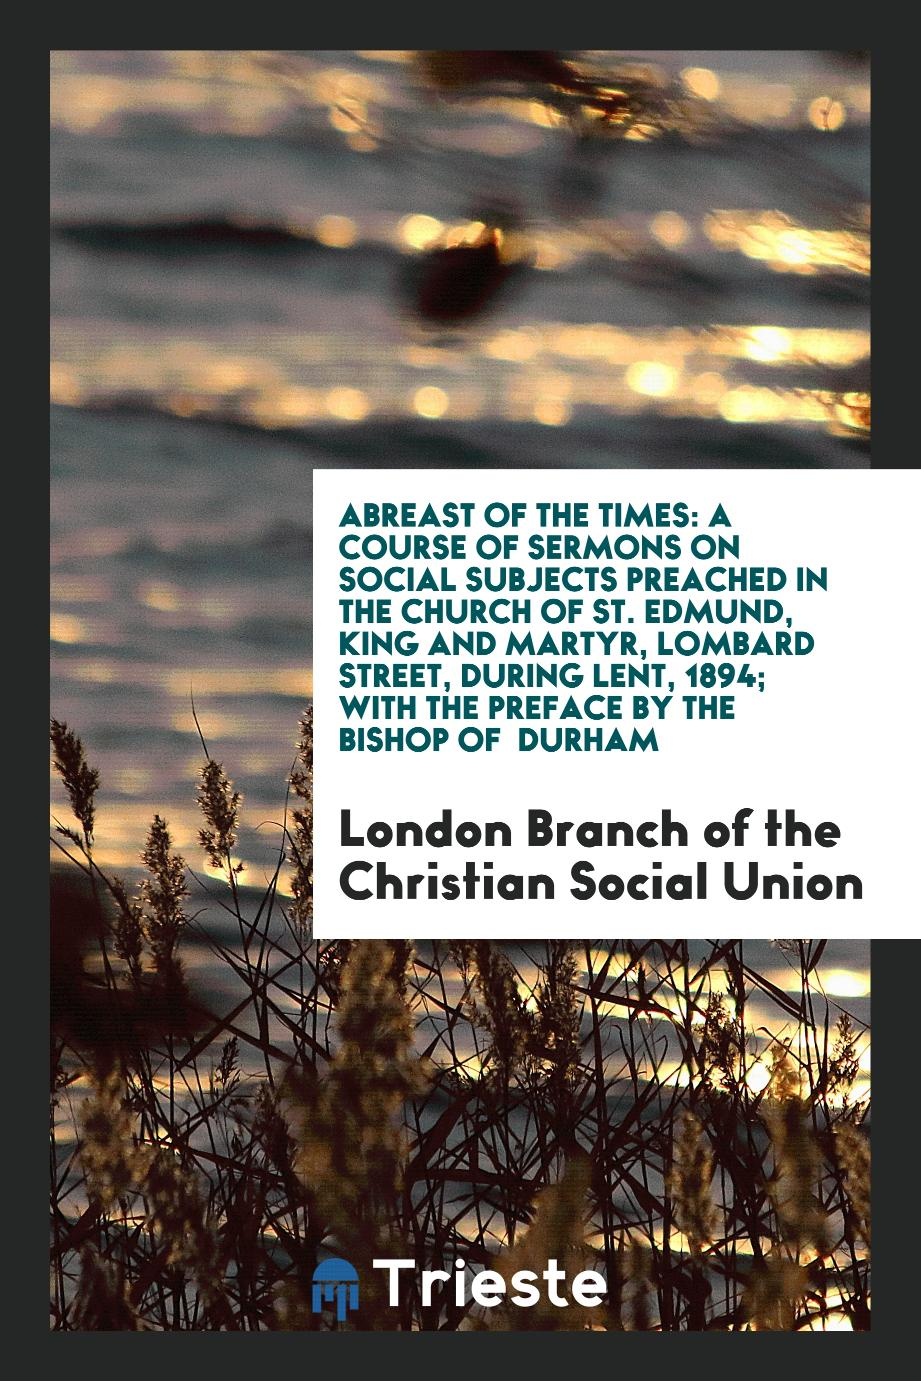 Abreast of the Times: A Course of Sermons on Social Subjects Preached in the Church of St. Edmund, King and Martyr, Lombard Street, During Lent, 1894; With the Preface by the Bishop of Durham